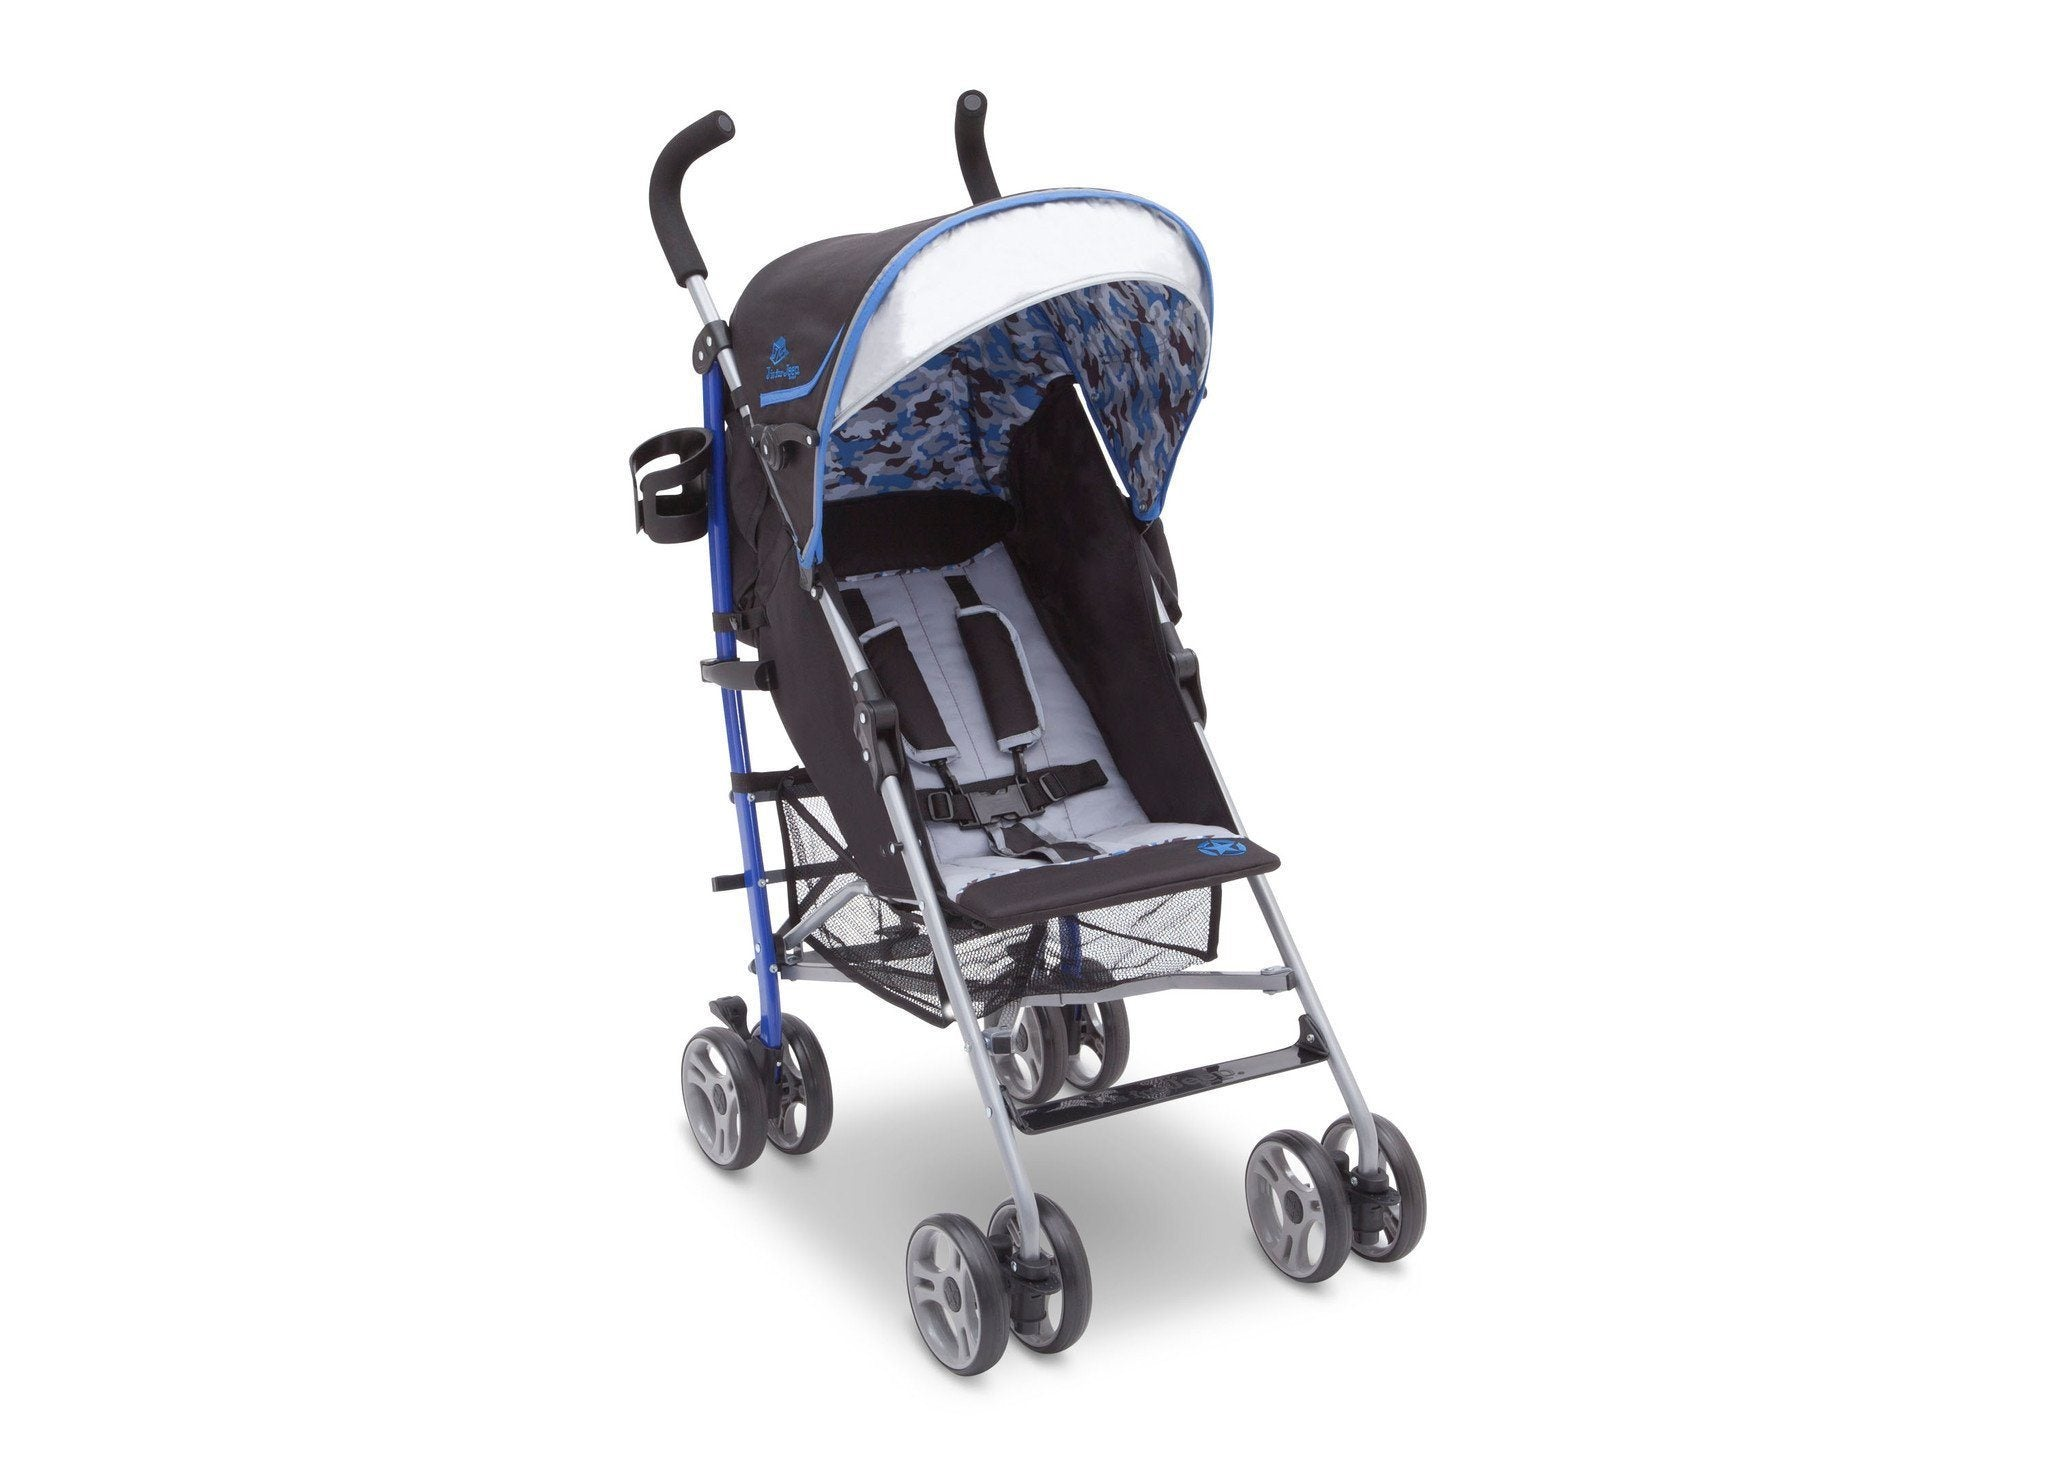 J is for Jeep Brand Camouflage Royal (433) Scout AL Sport Stroller, Right View, b1b